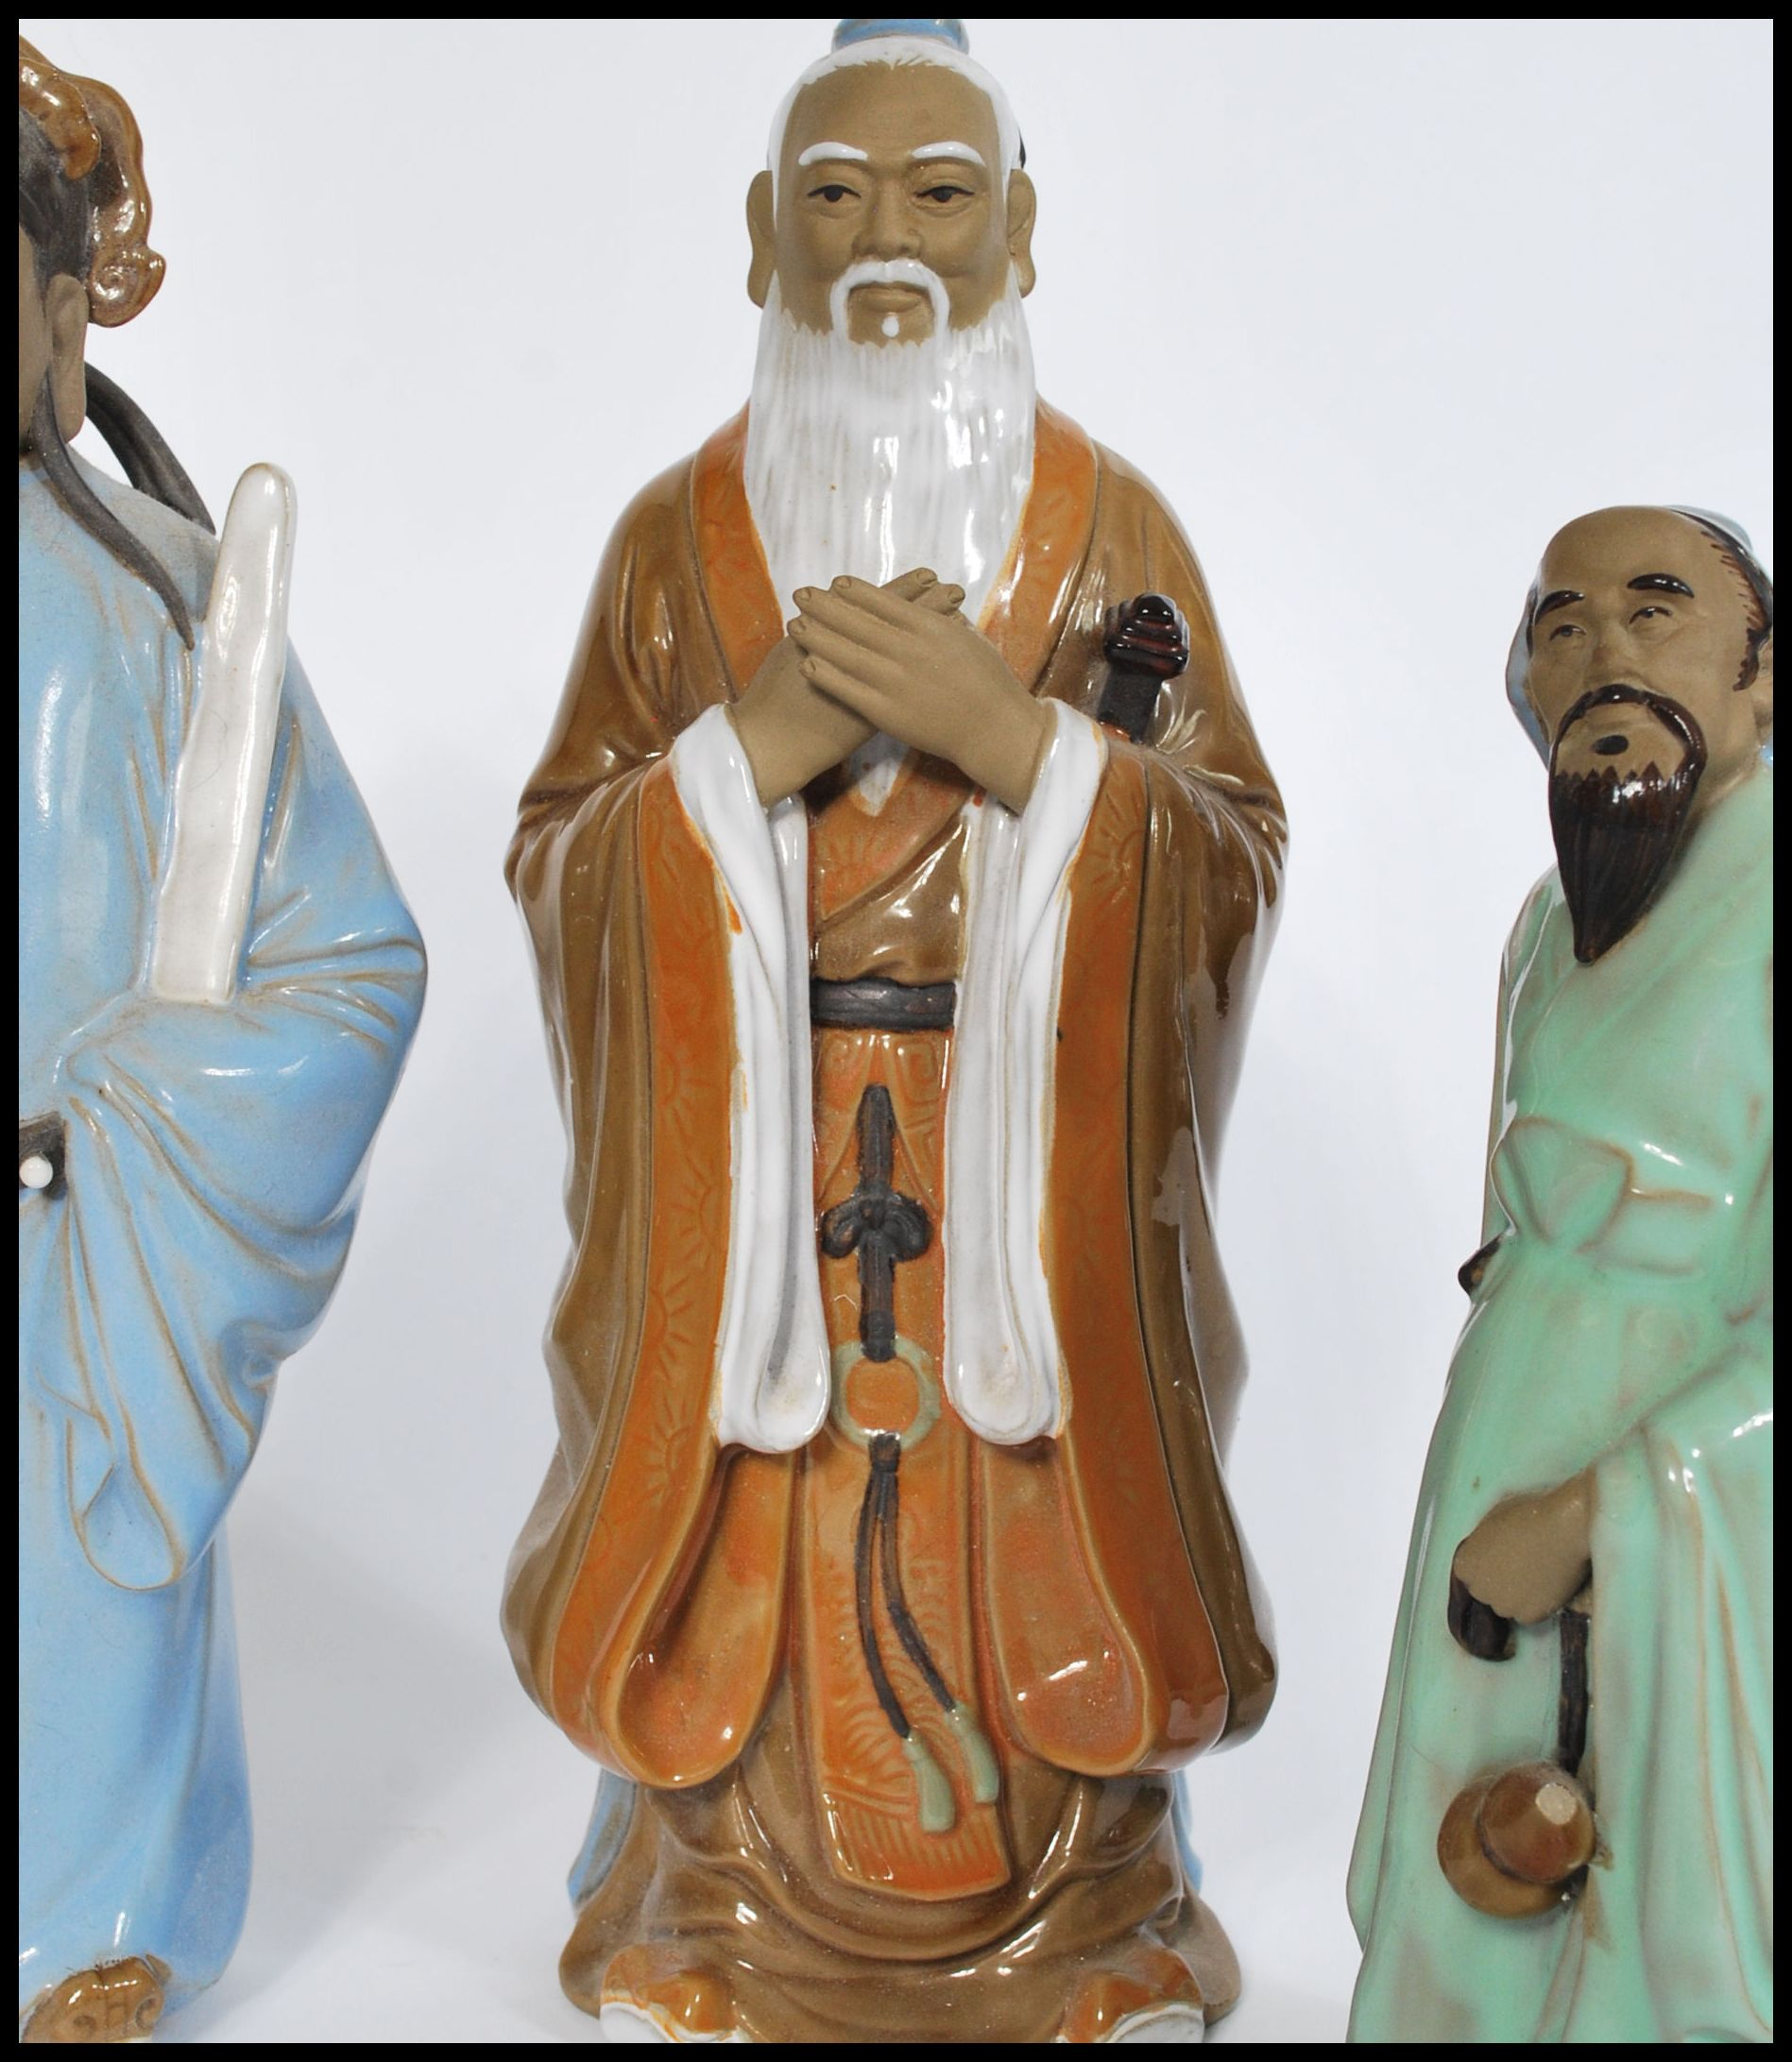 Lot 55 - A group of five 20th century Oriental Chinese and Japanese pottery and ceramic figurines of